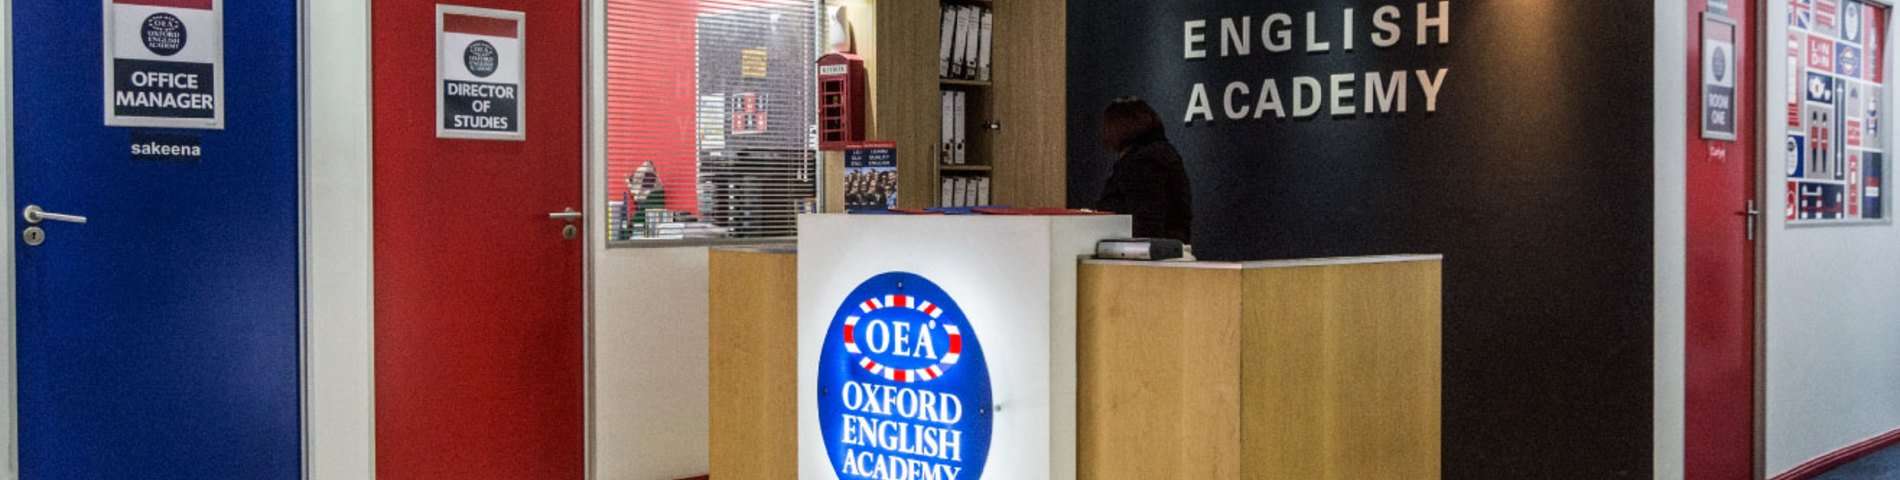 Oxford English Academy Bild 1